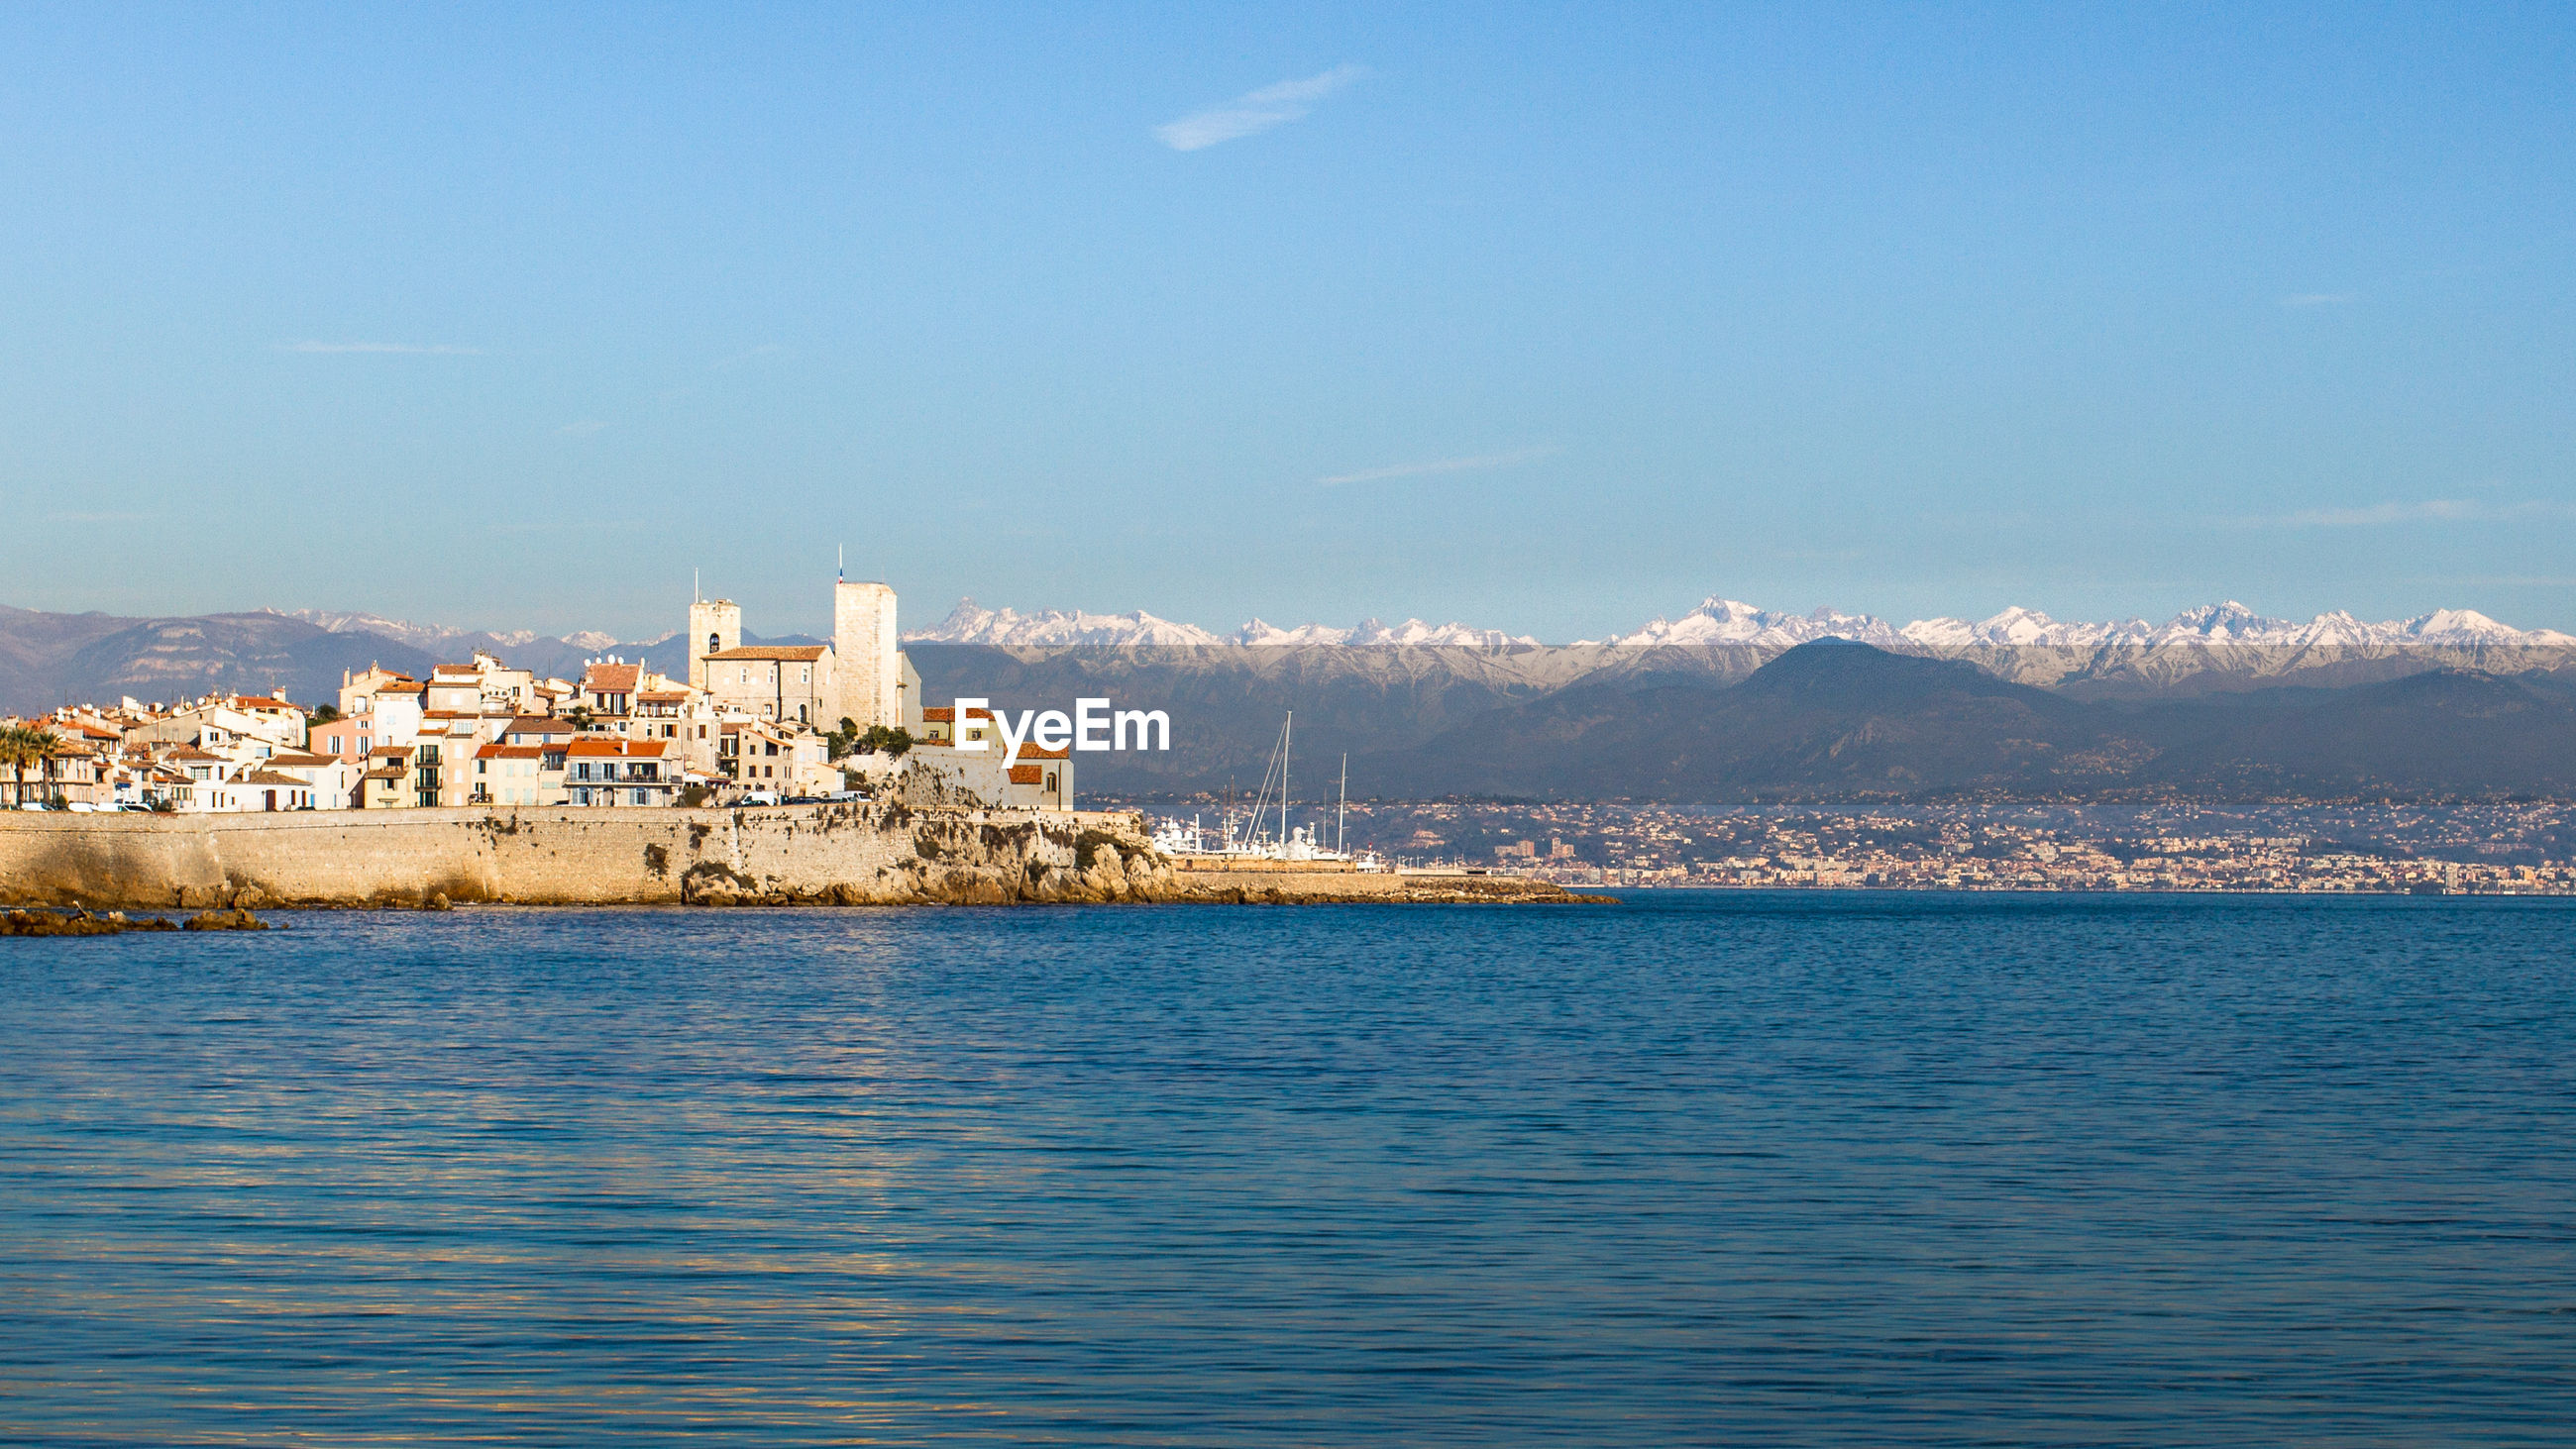 View of sea with snowcapped mountains in background against blue sky